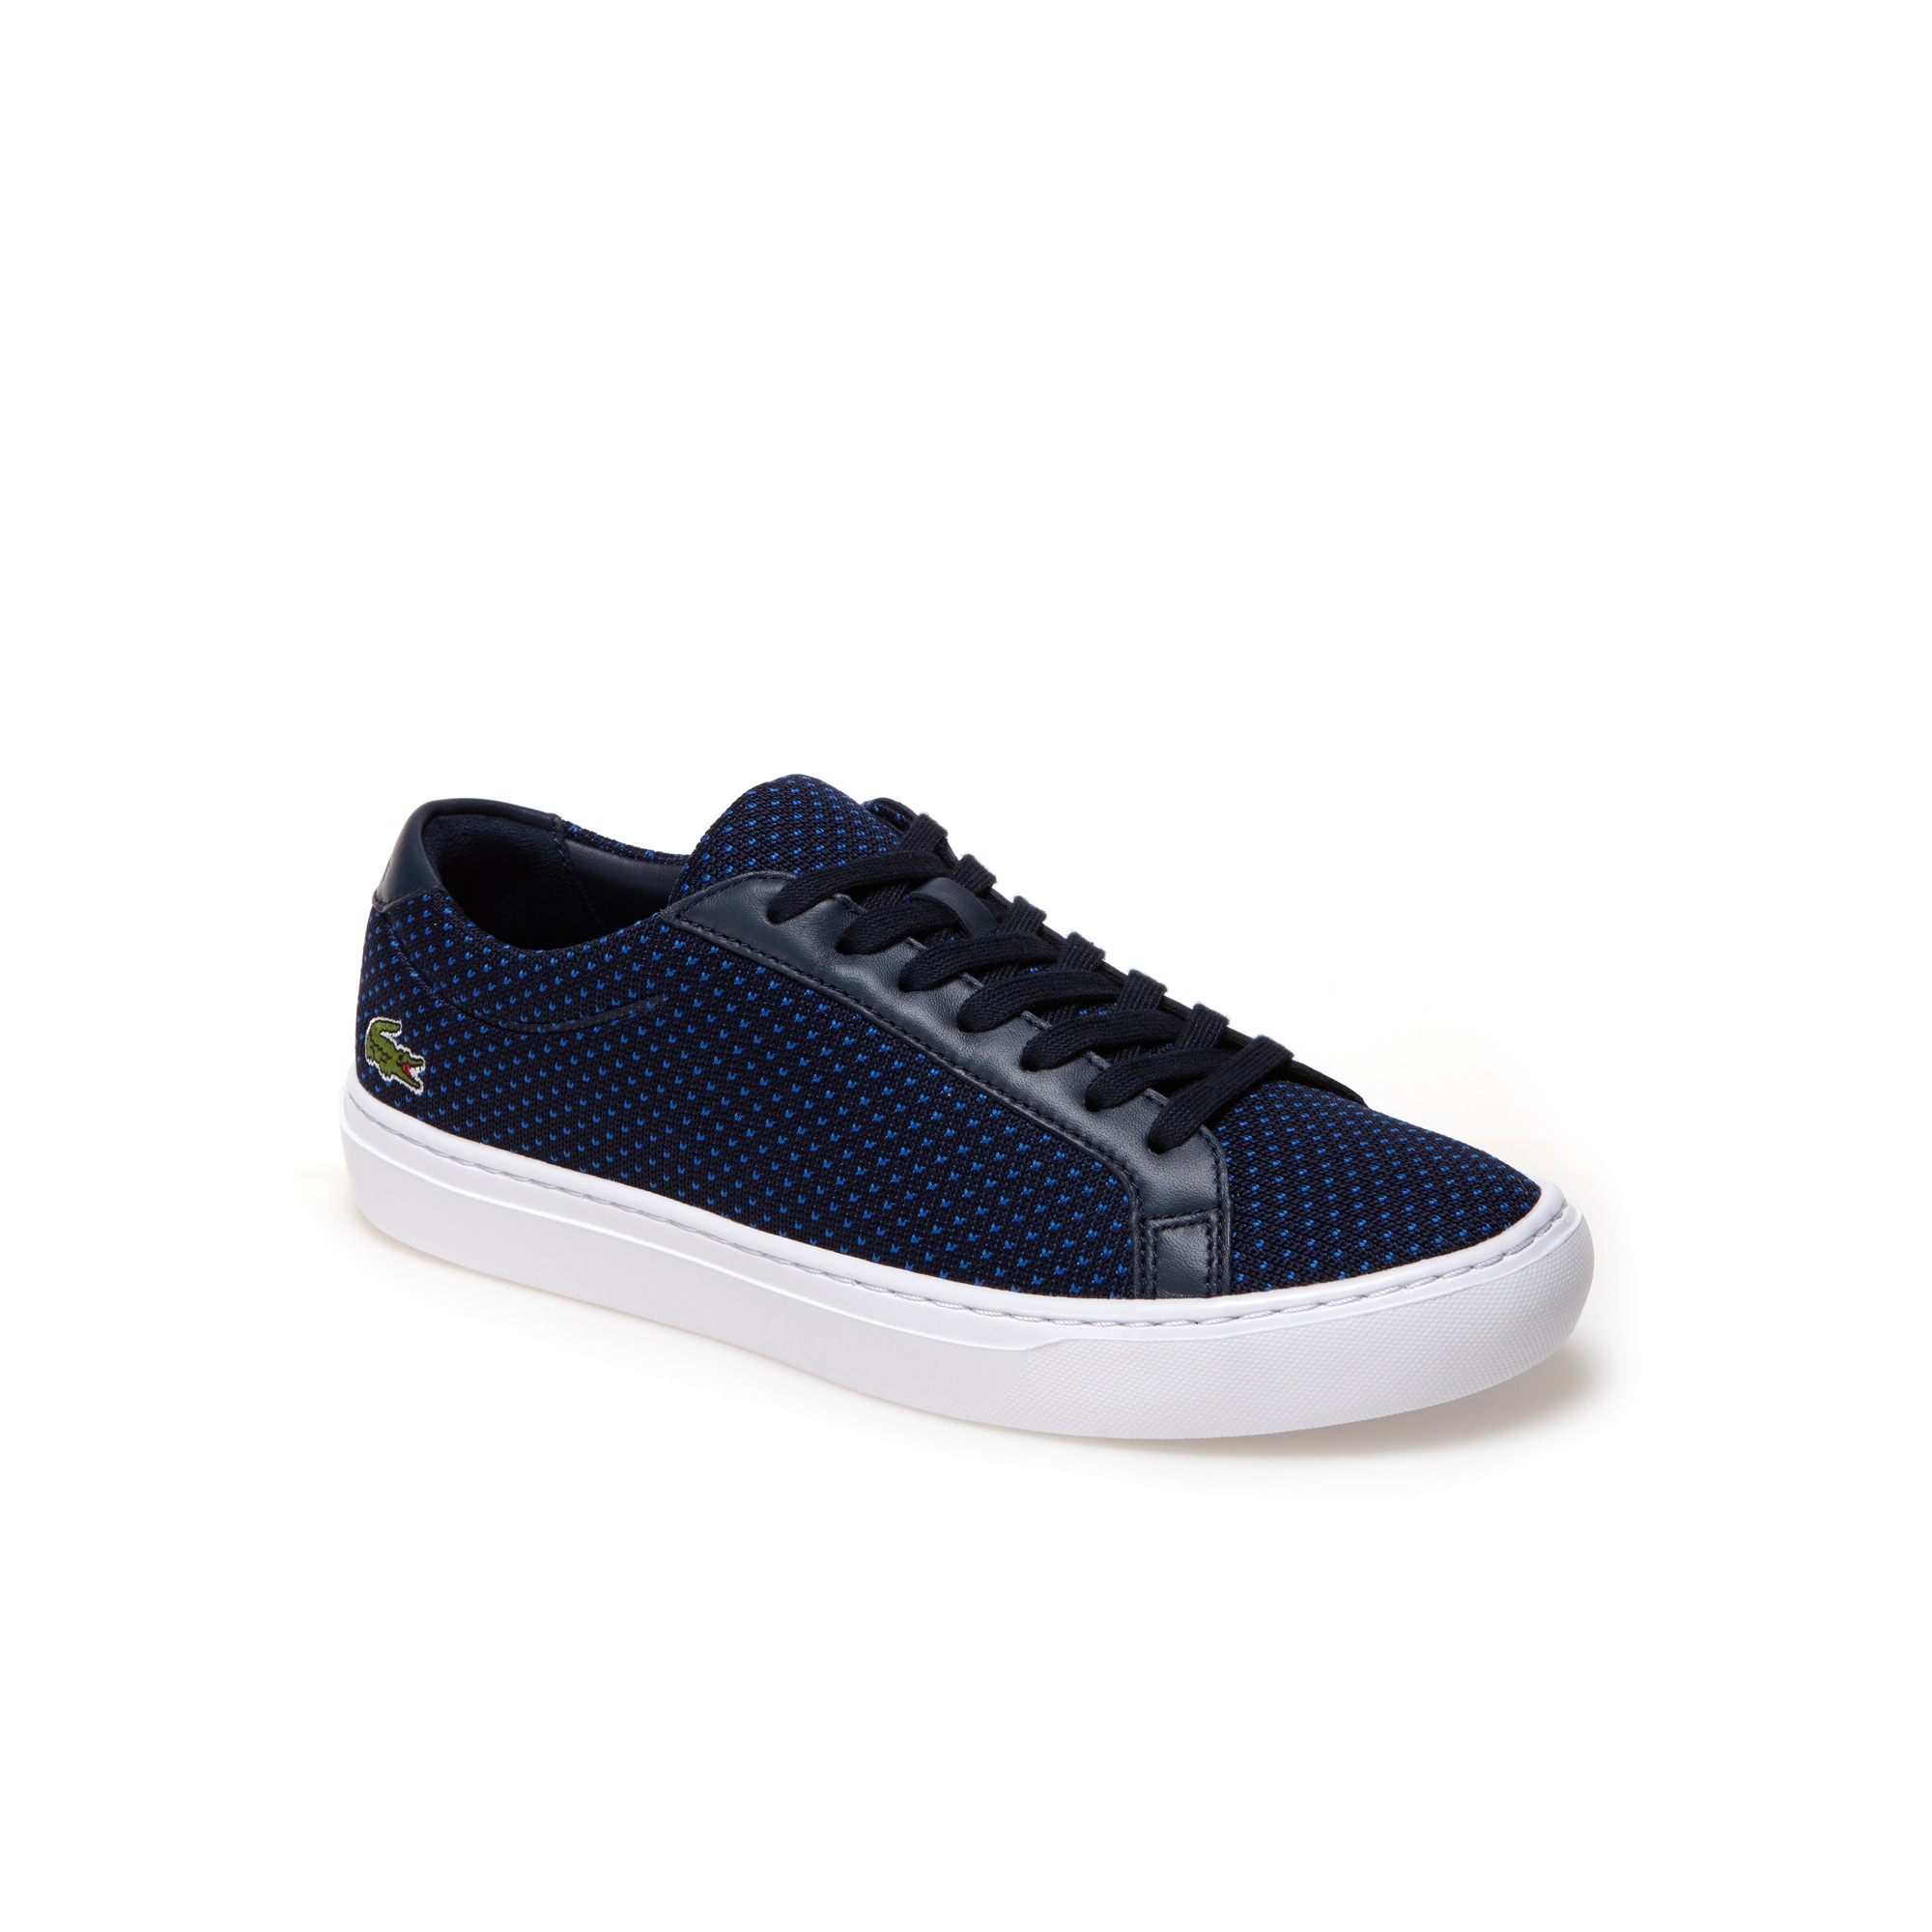 Men's L.12.12 Lightweight Sneakers